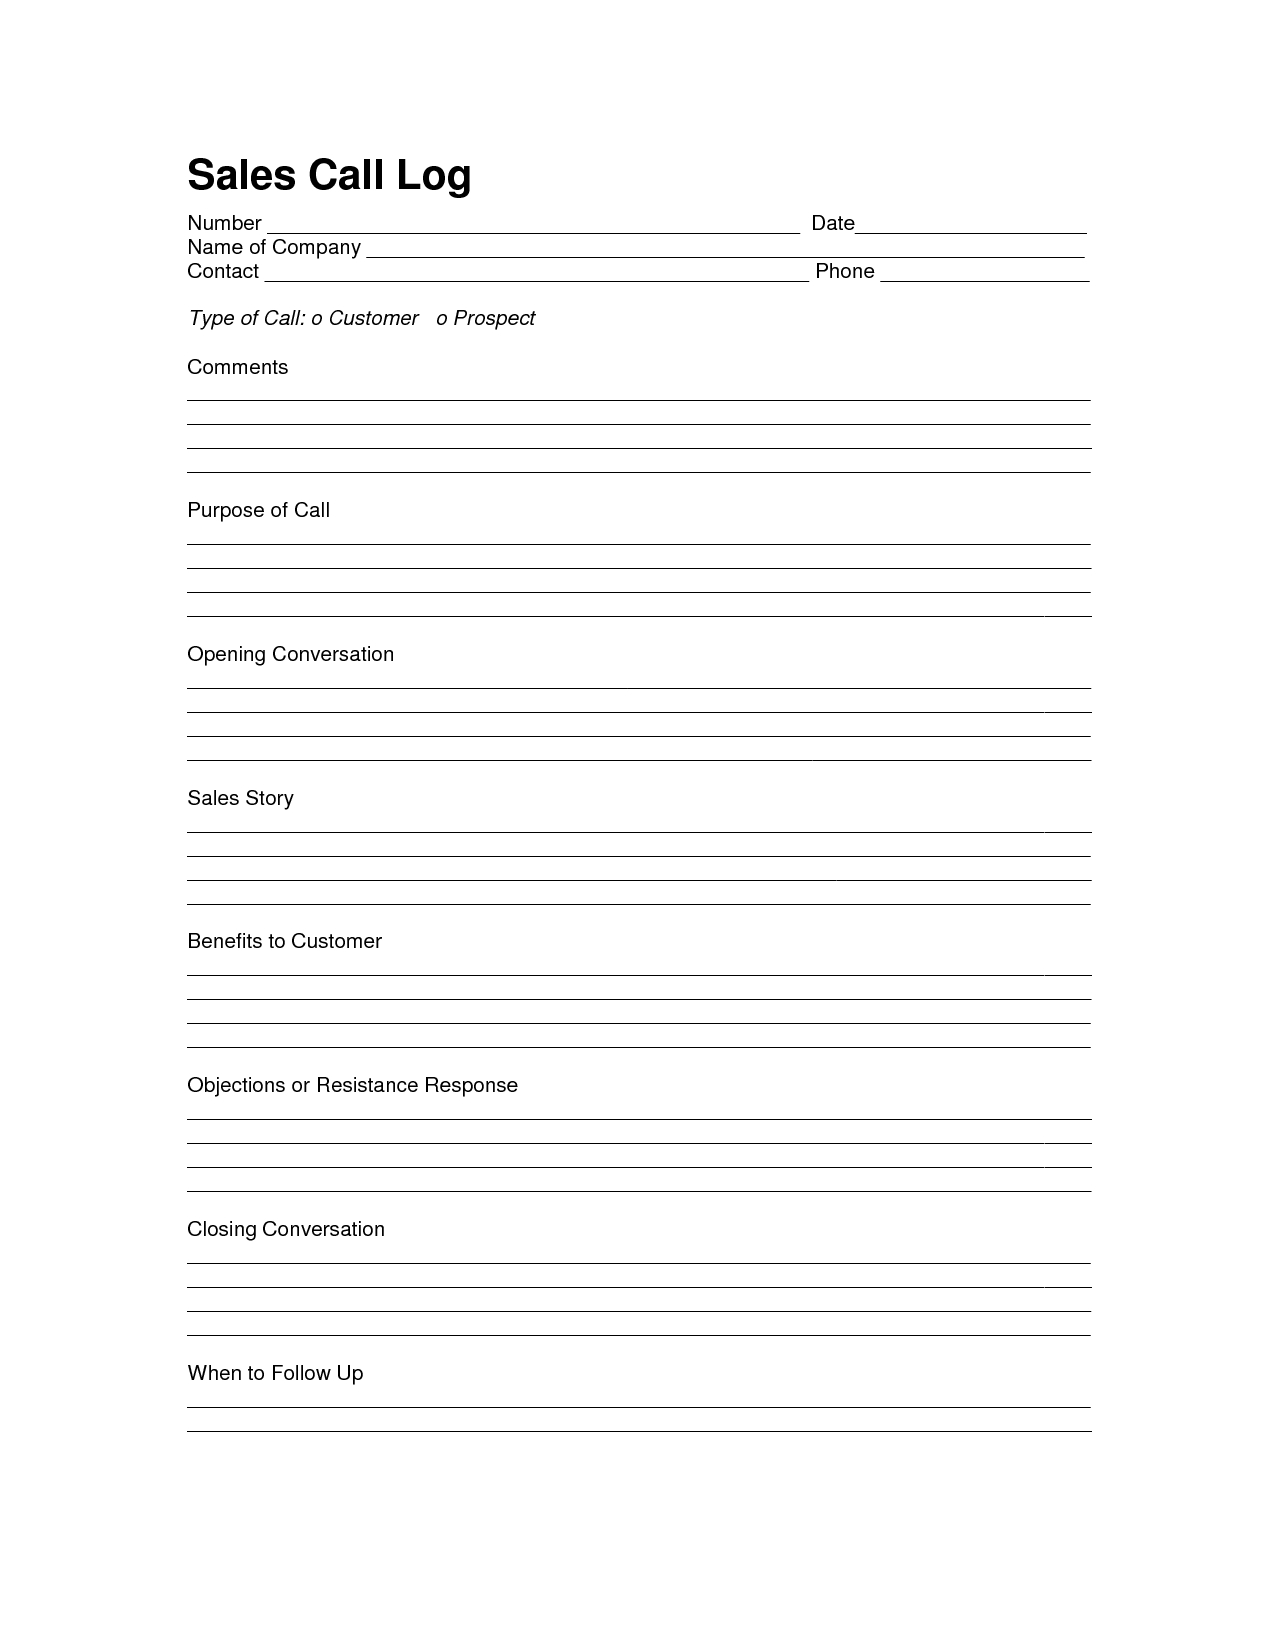 Car Sales Prospecting Letter Template - Sales Log Sheet Template Sales Call Log Template